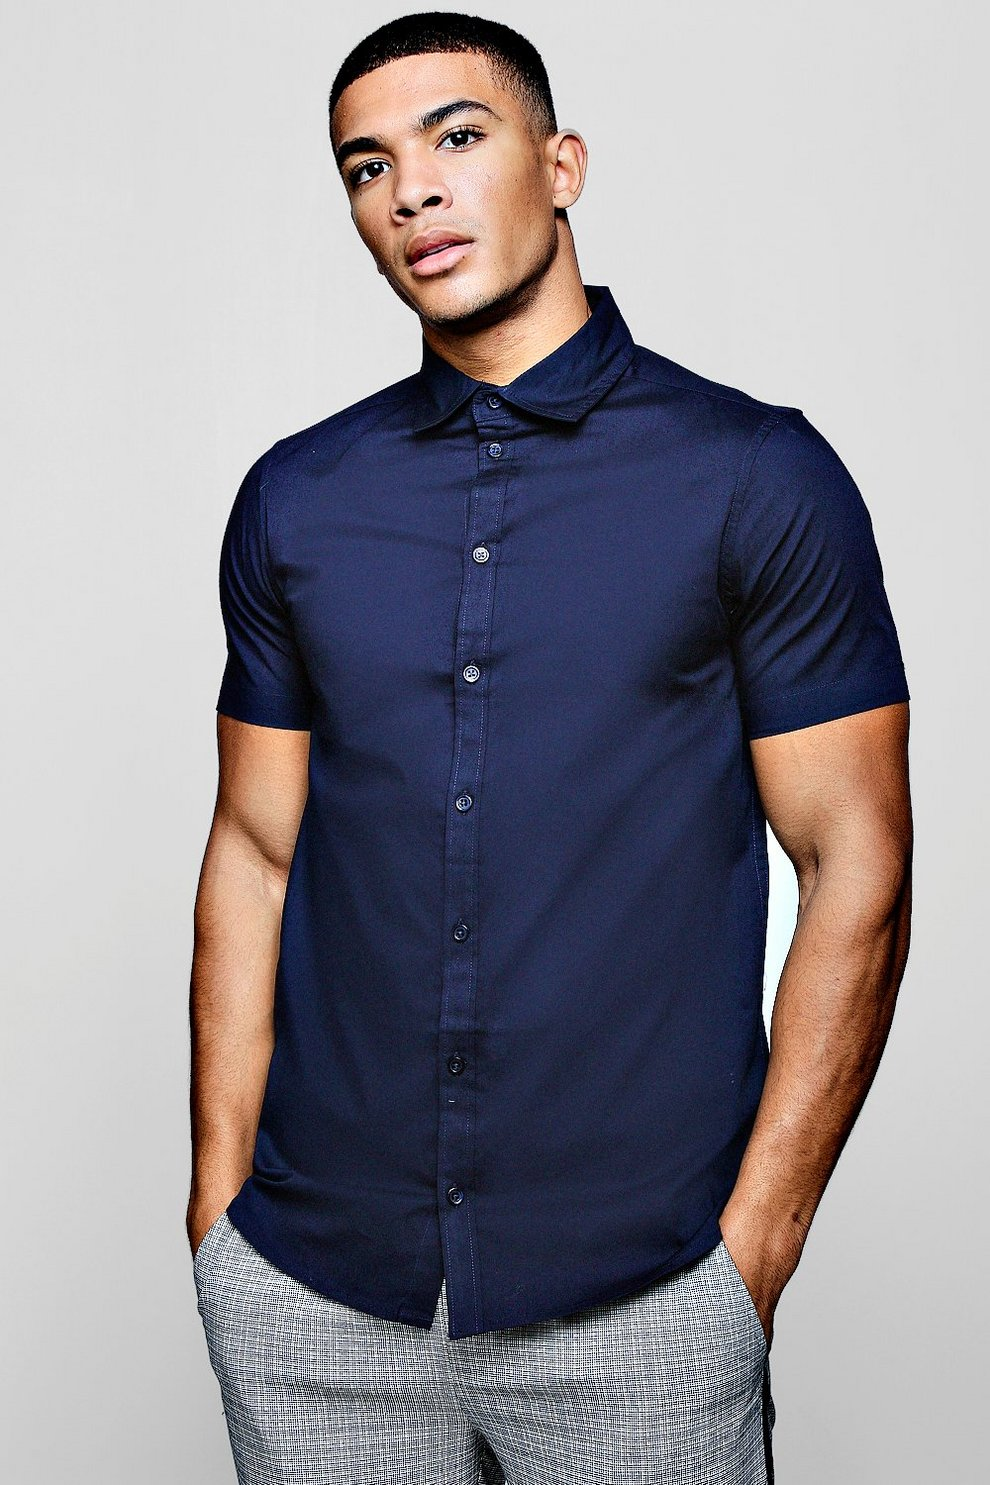 9d99f43d6 Mens Navy Muscle Fit Short Sleeve Shirt. Hover to zoom. Close video